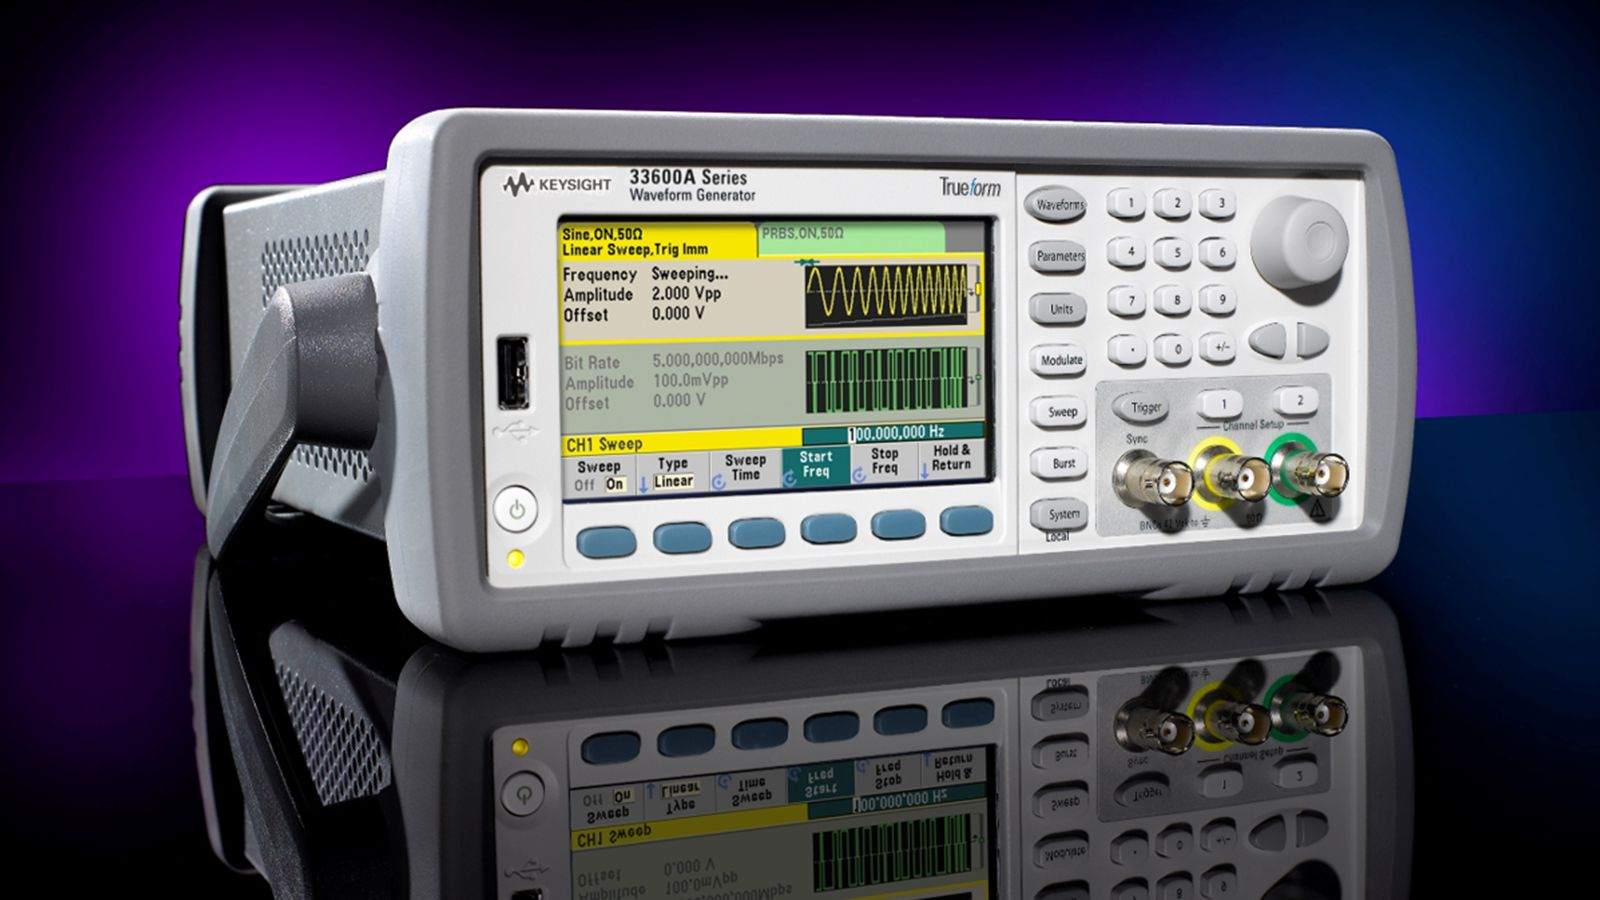 Keysight's Waveform Generator and Function Generator